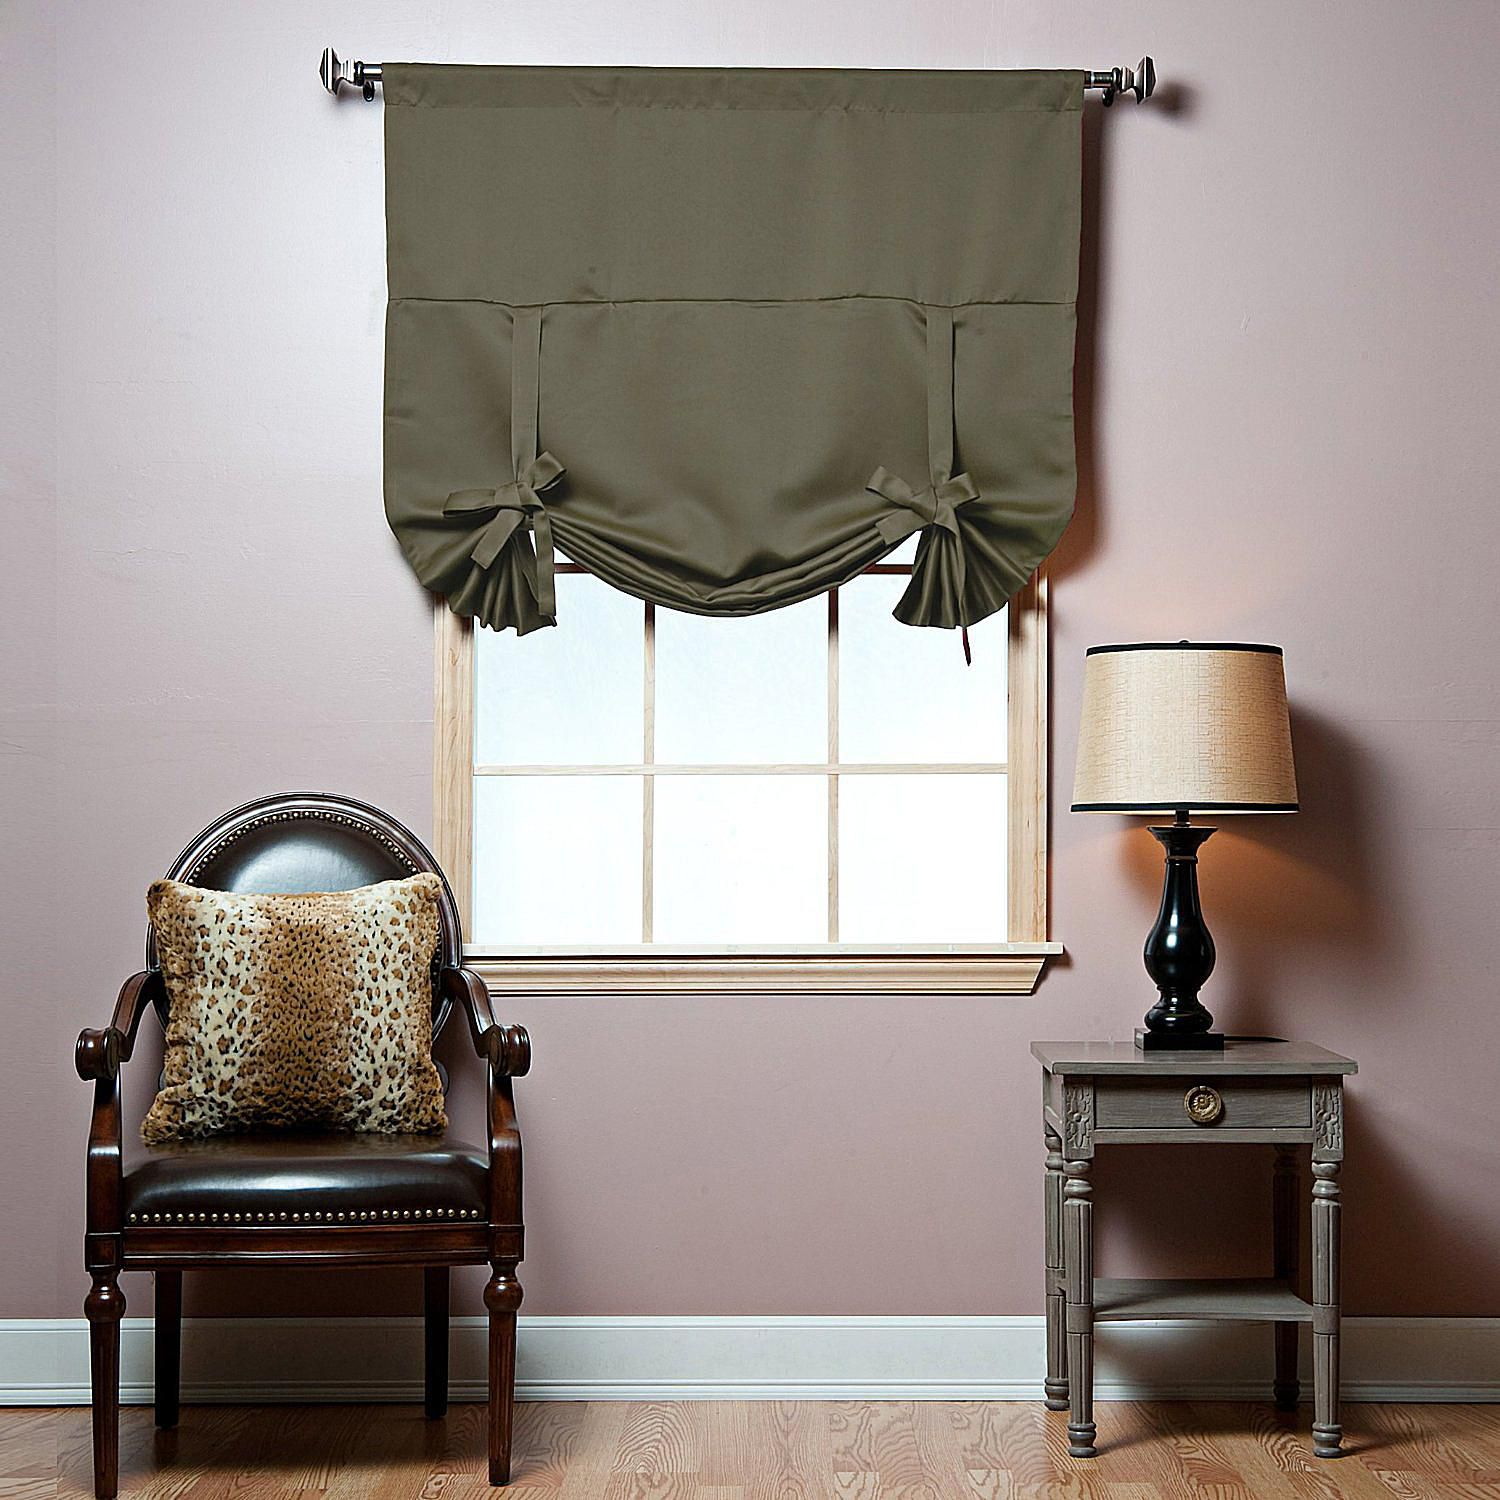 2017 06 types of curtains - The 4 Basic Types Of Window Shades For Bedrooms